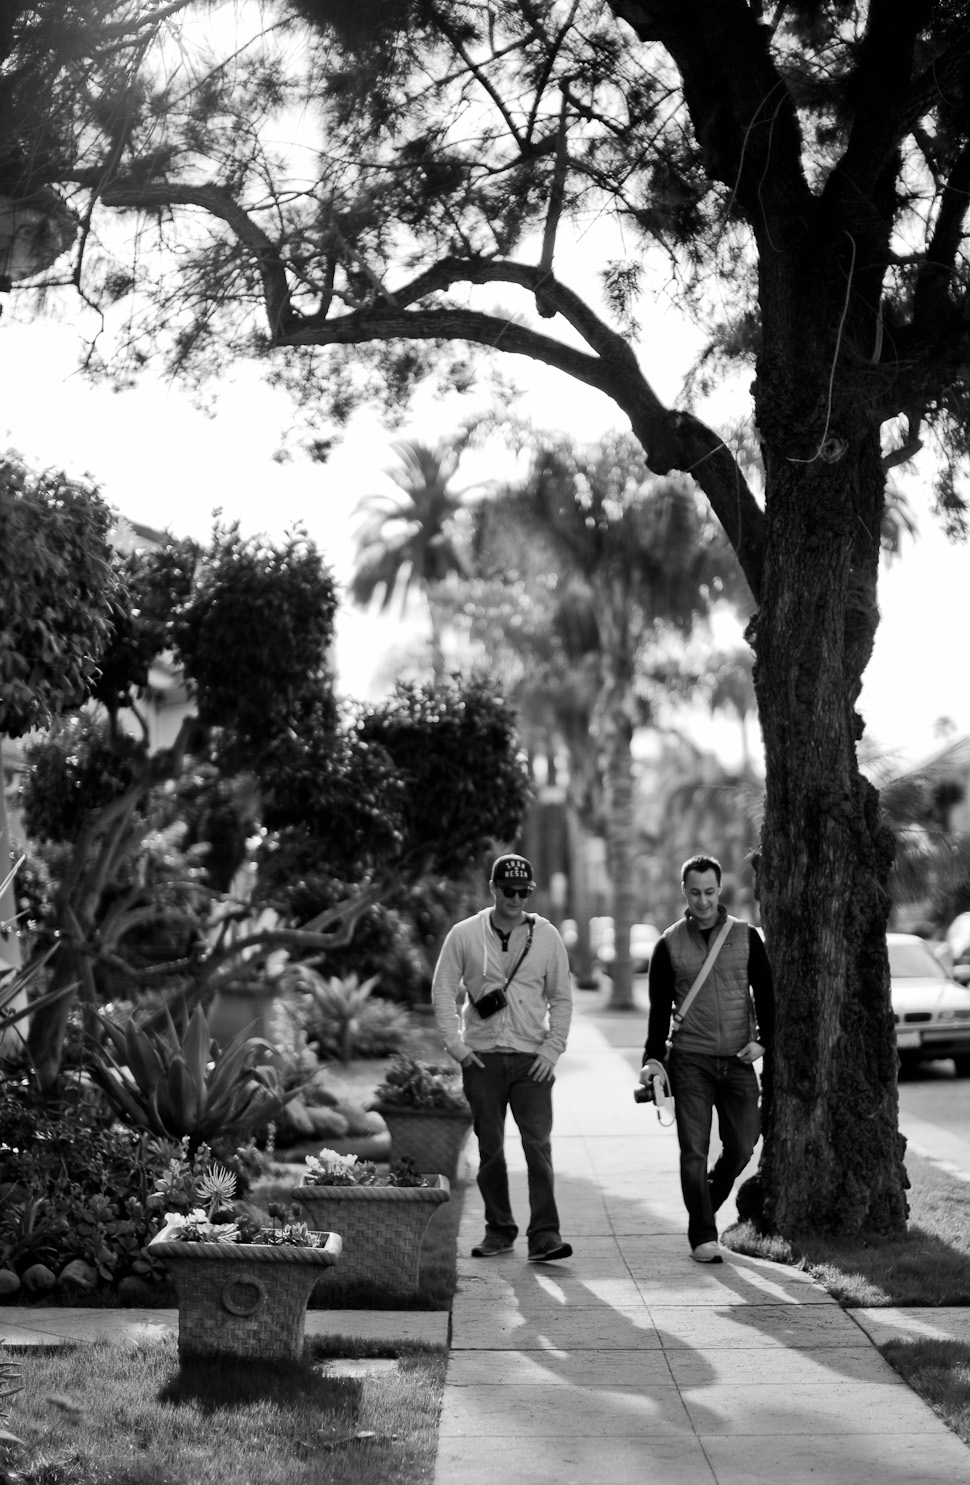 Rob and John in the sunny December weather in Santa Barbara, December 2014. Leica M240 with Leica 50mm Noctilux-M ASPH f/0.95